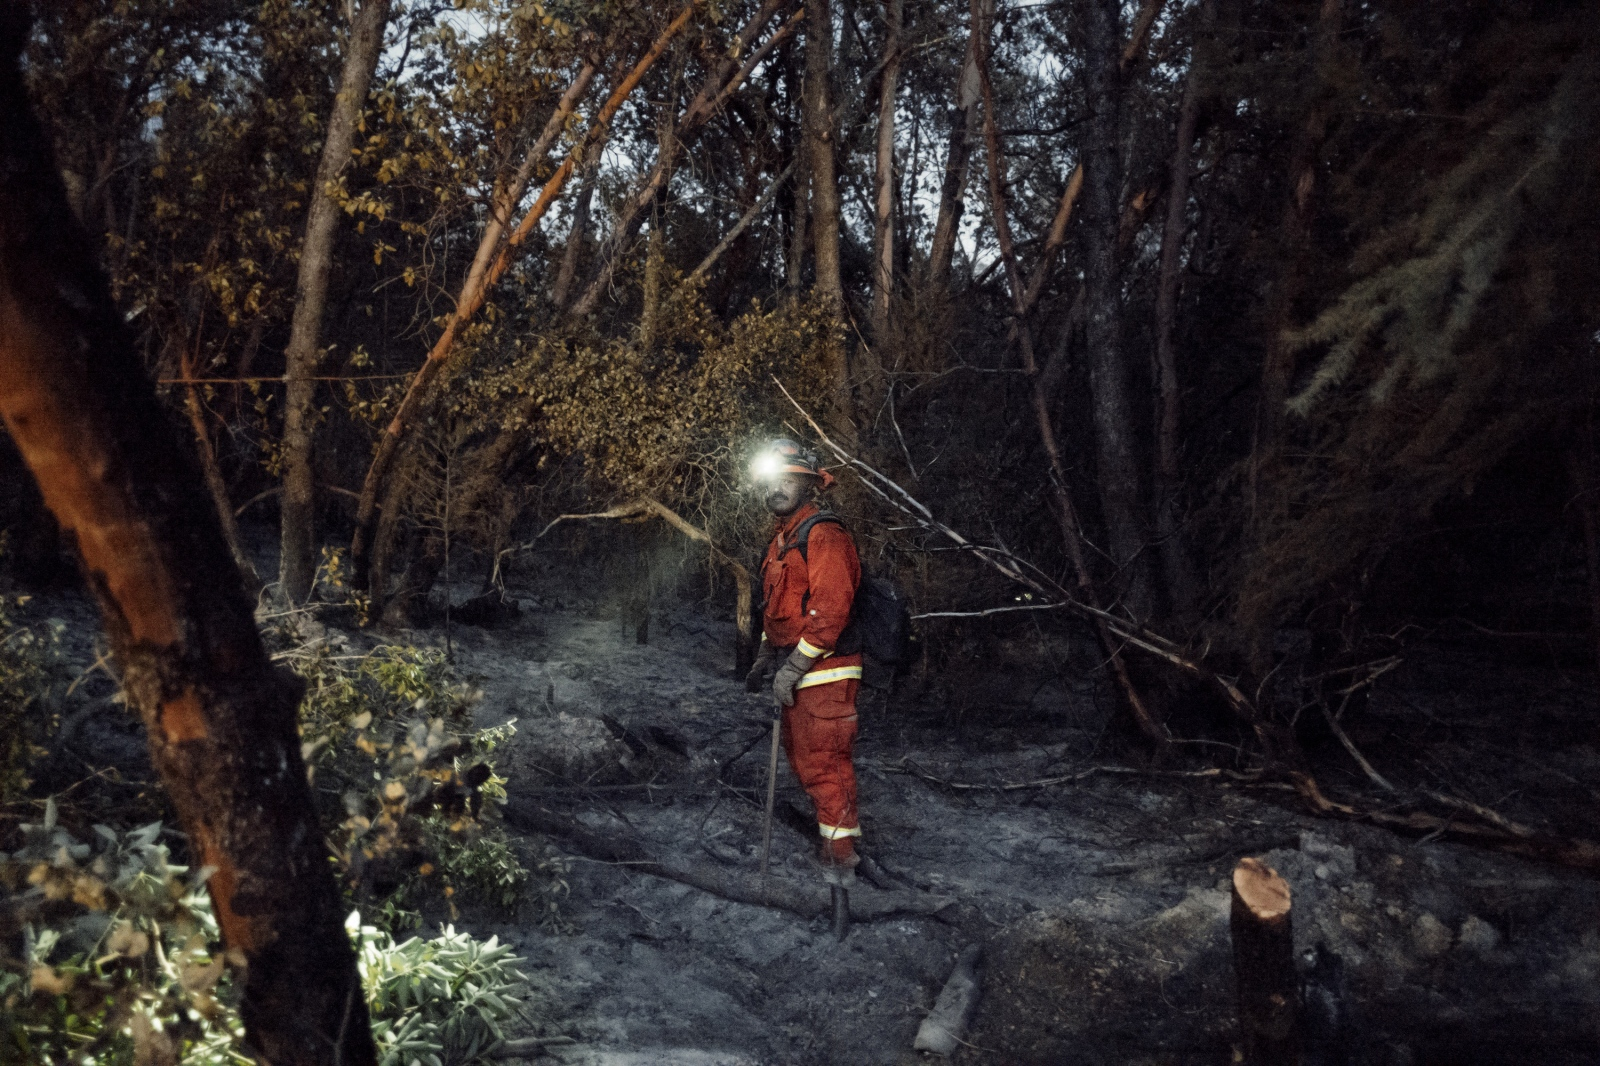 Inmates work 24 hour shifts when on a fire, both day and night, often sleeping in the wilderness, before then getting 24 hours of down time before heading back to fight more fire.